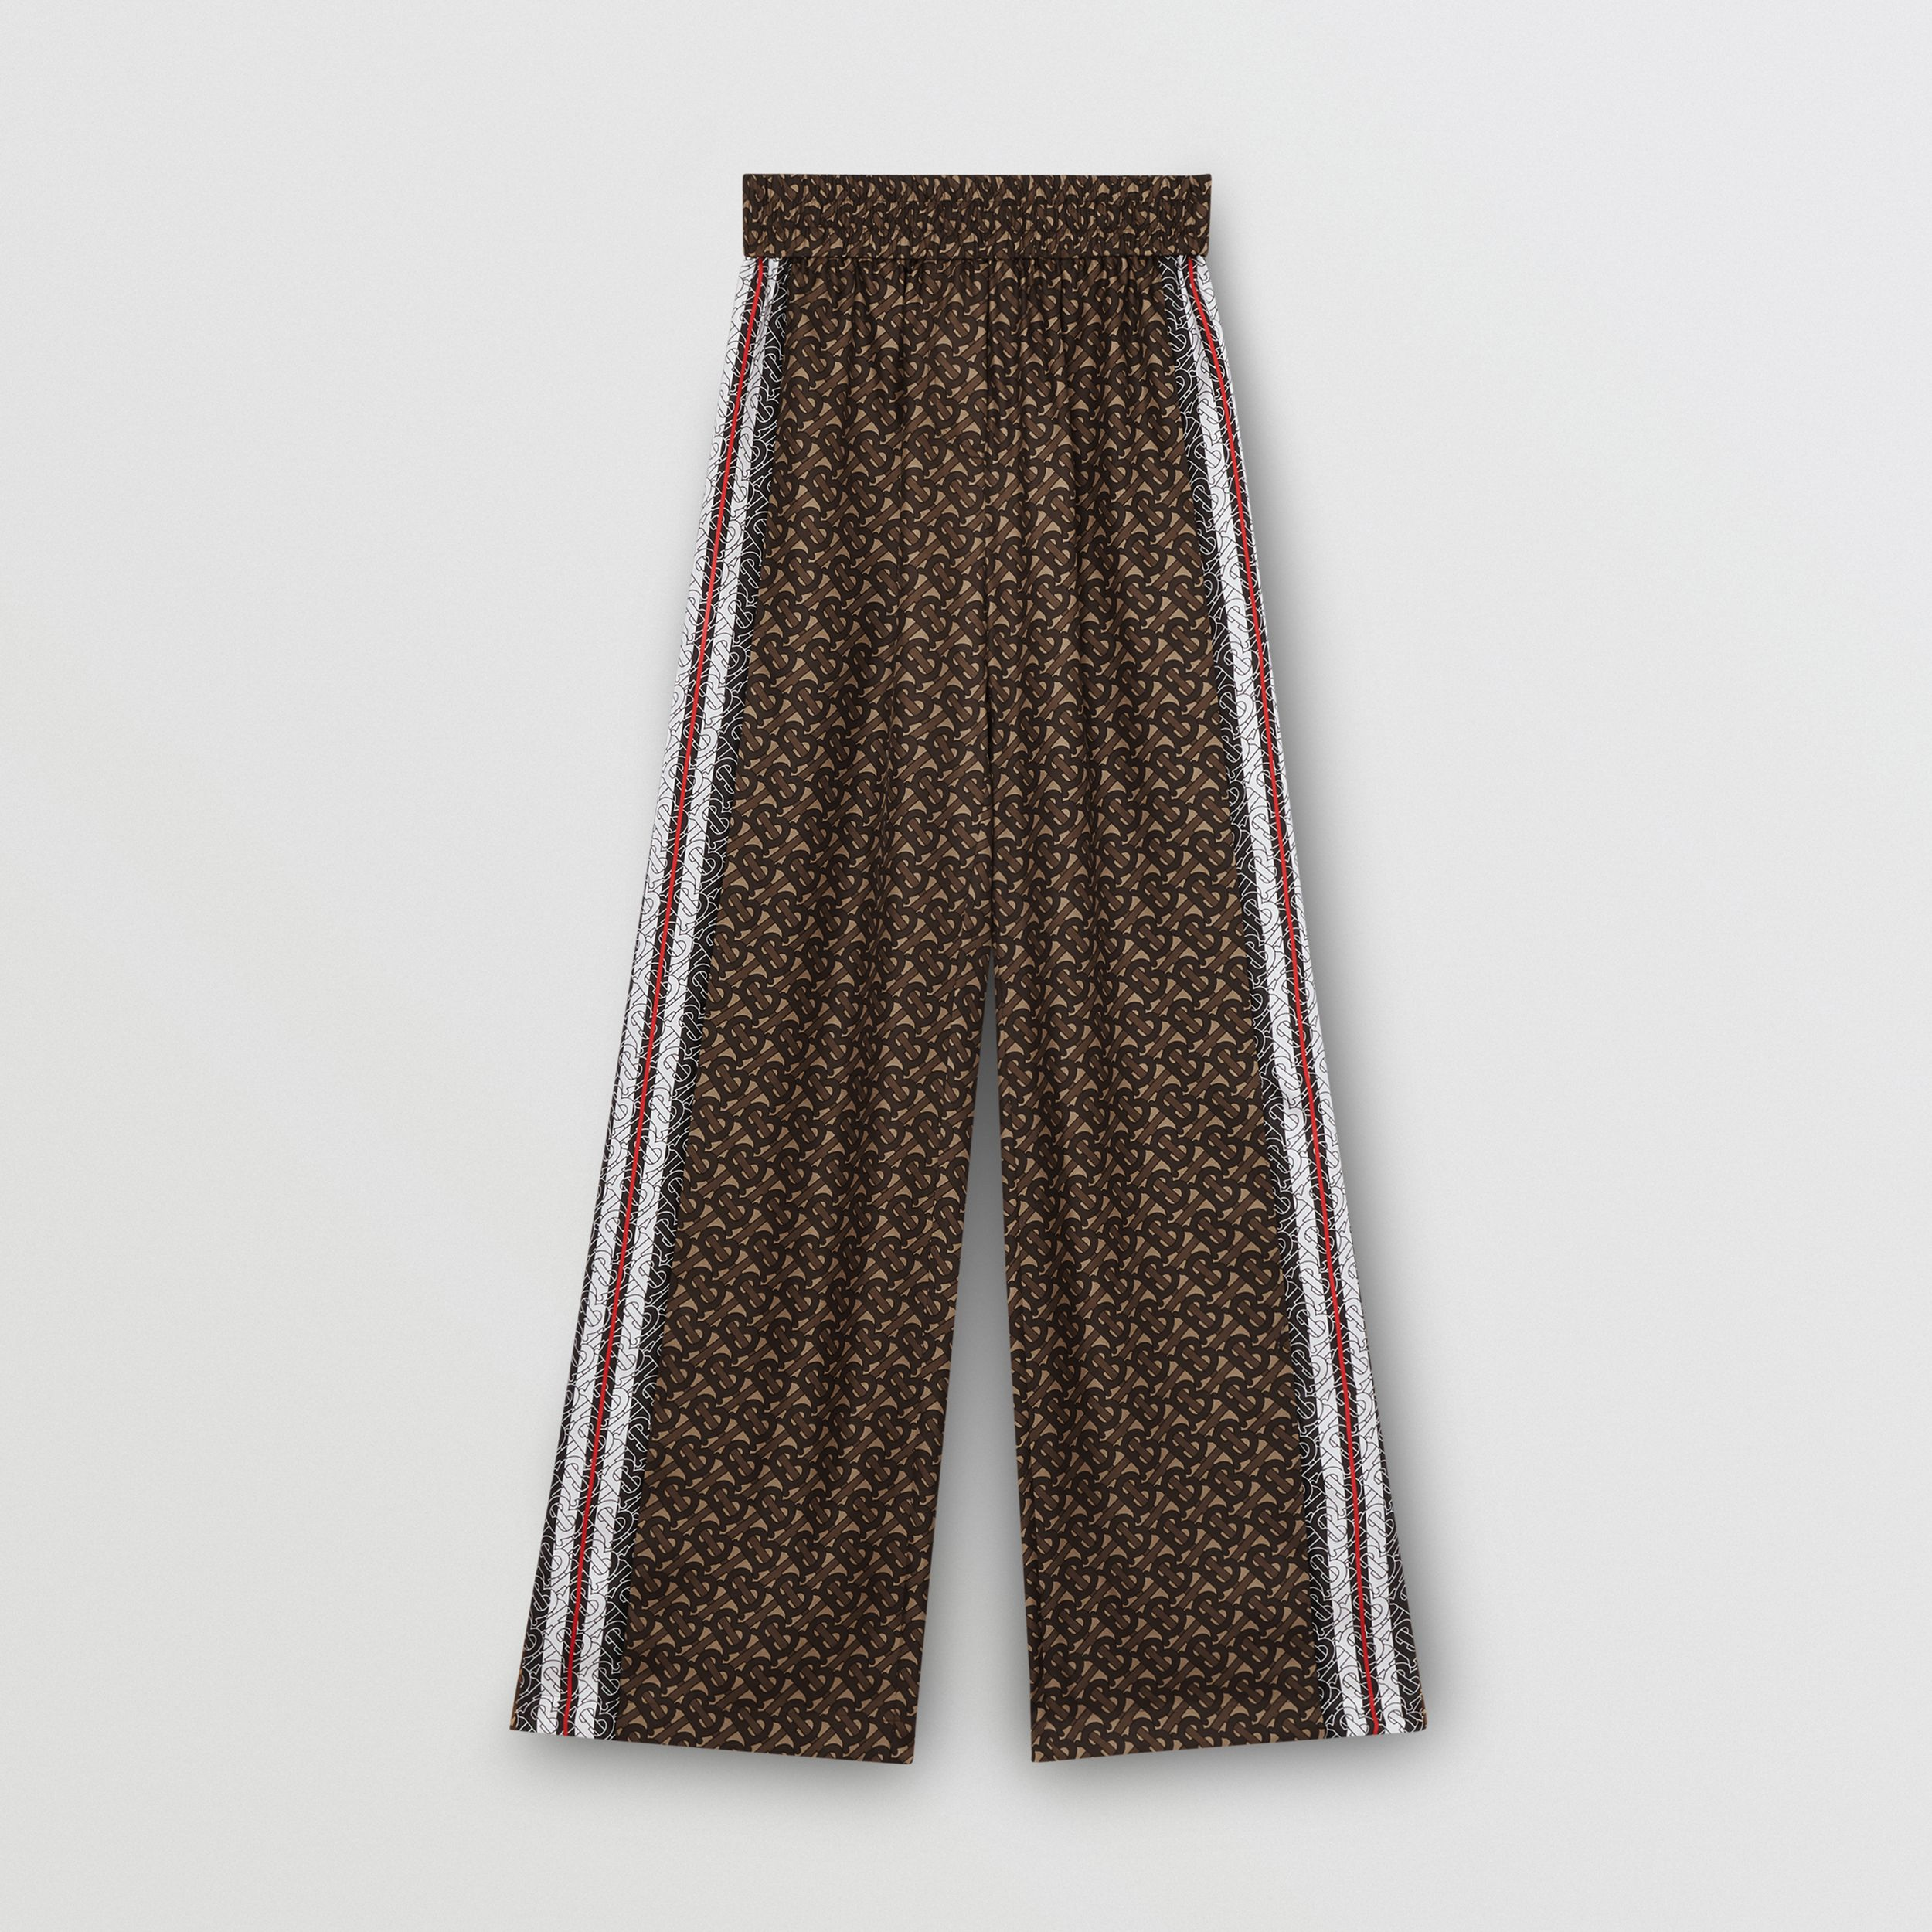 Monogram Stripe Print Silk Wide-leg Trousers in Bridle Brown - Women | Burberry Canada - 4